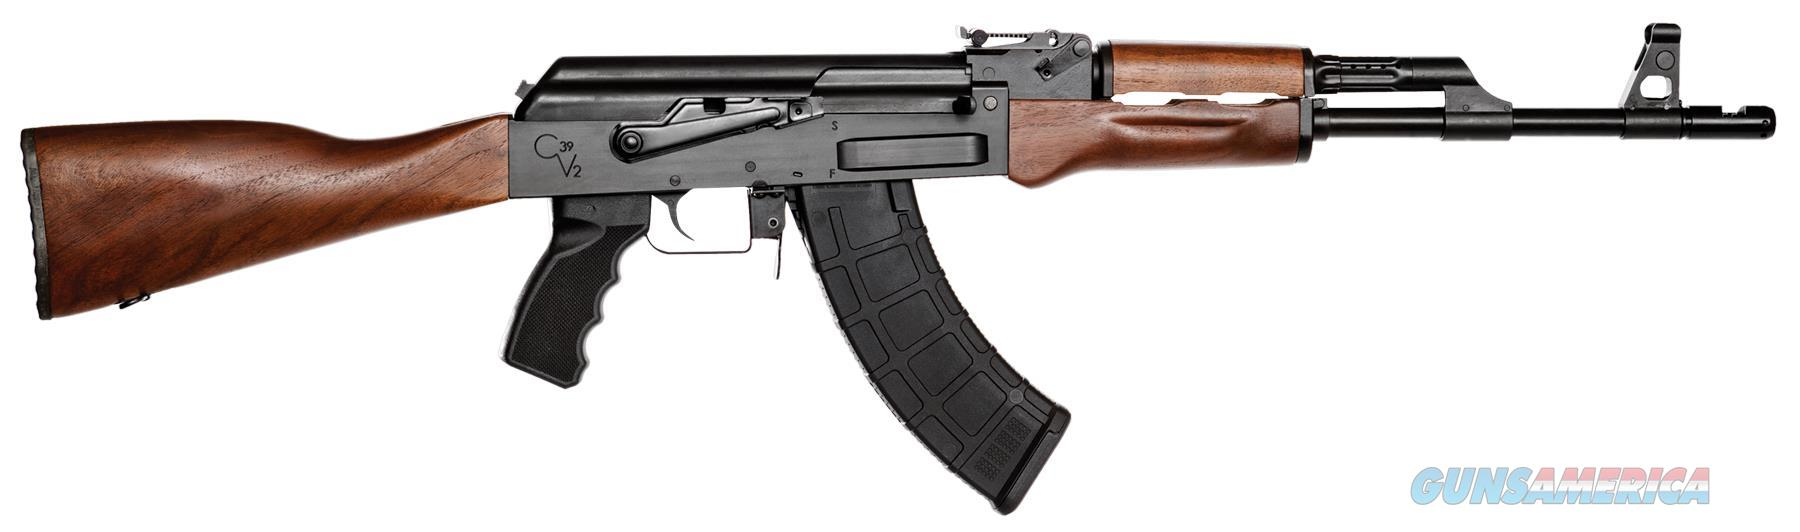 "CENTURY INTERNATIONAL ARMS C39V2 7.62X39 16.5"" 30RD RI2245-N  Guns > Rifles > Century International Arms - Rifles > Rifles"